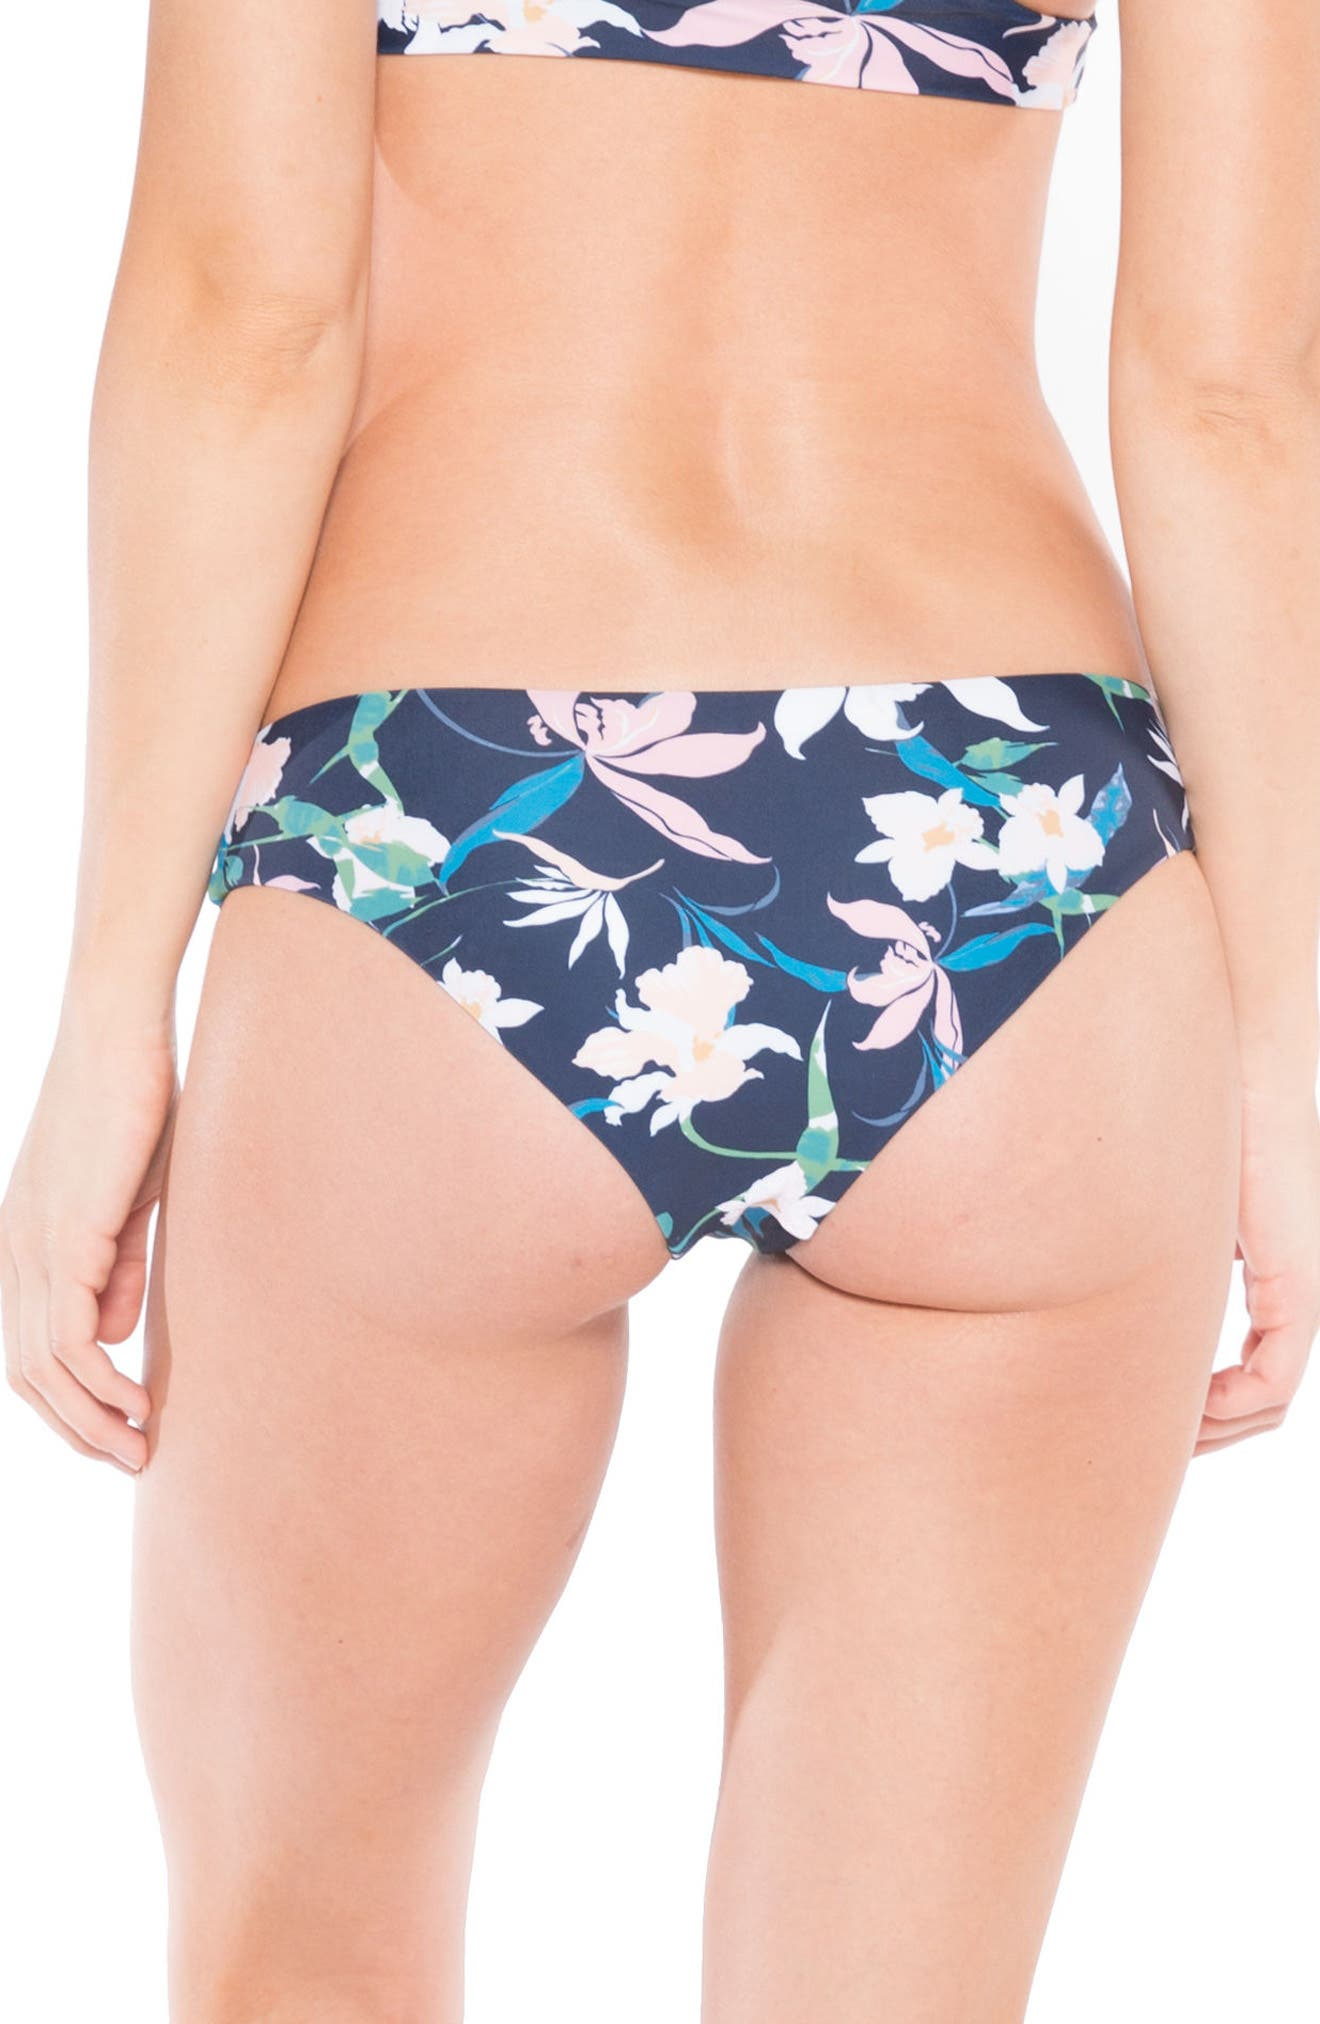 Arlo Hipster Bikini Bottoms,                             Alternate thumbnail 2, color,                             Navy Byrds Floral